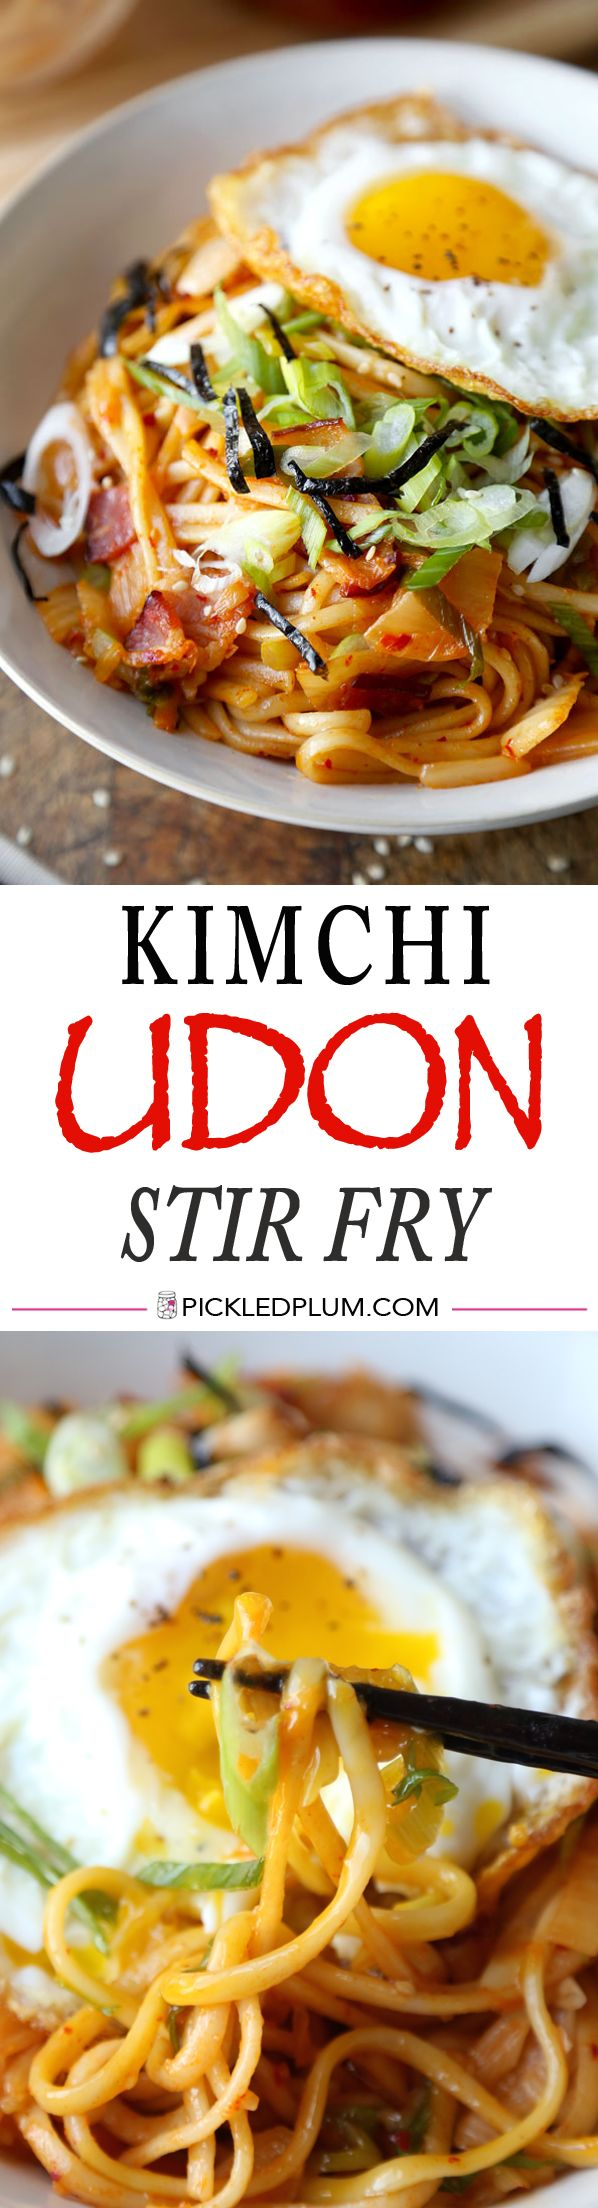 Kimchi Udon Stir Fry - Quick and Easy Recipe that only takes 15 minutes to make from start to finish!